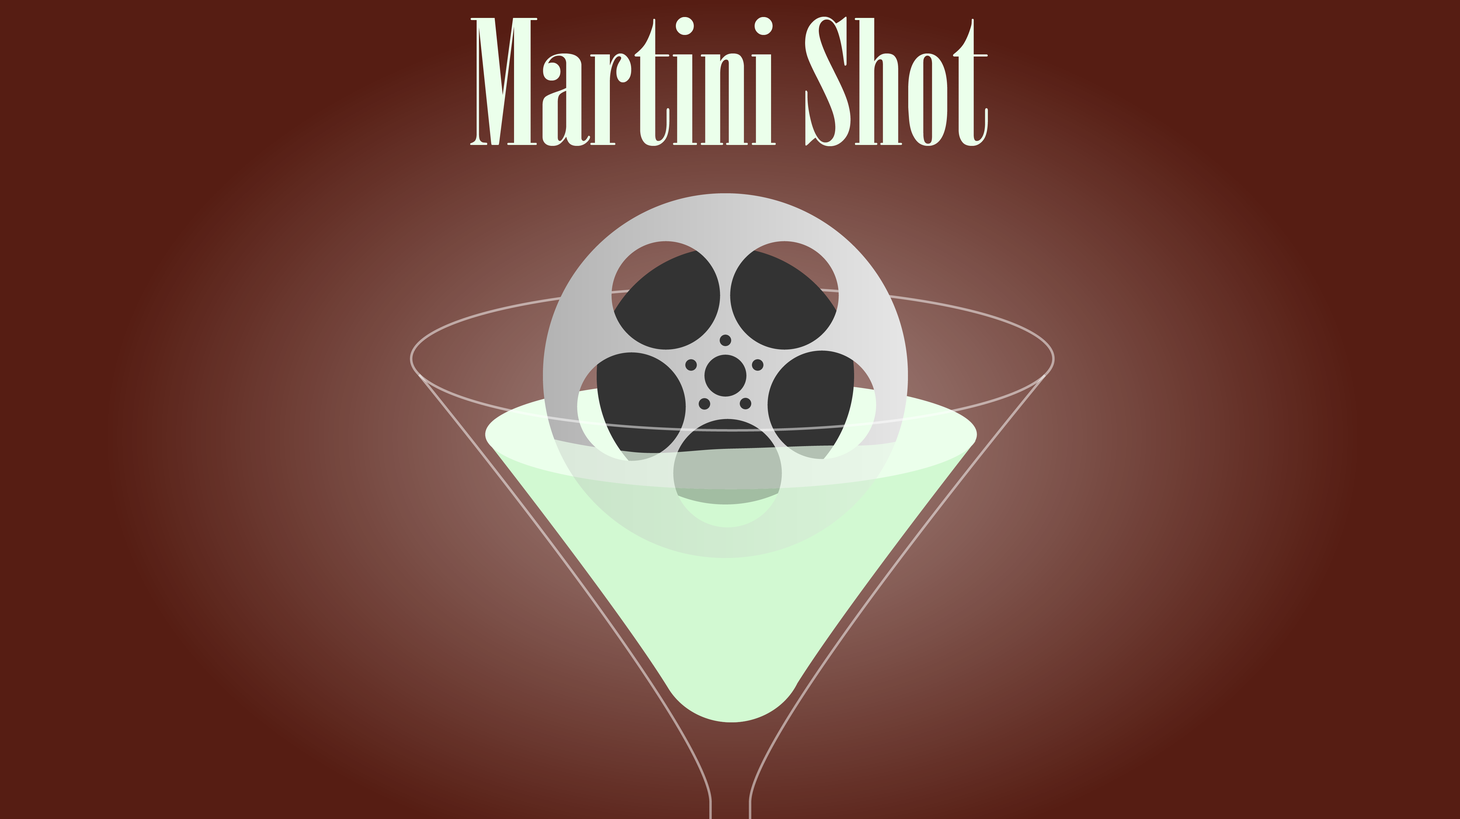 This is Rob Long and on today's Martini Shot I spend most of my time talking about the second most talked-about thing in the entertainment industry, which is, where on the lot do you park? The most talked-about thing is, of course, when did you buy your house, and what did you pay for it.